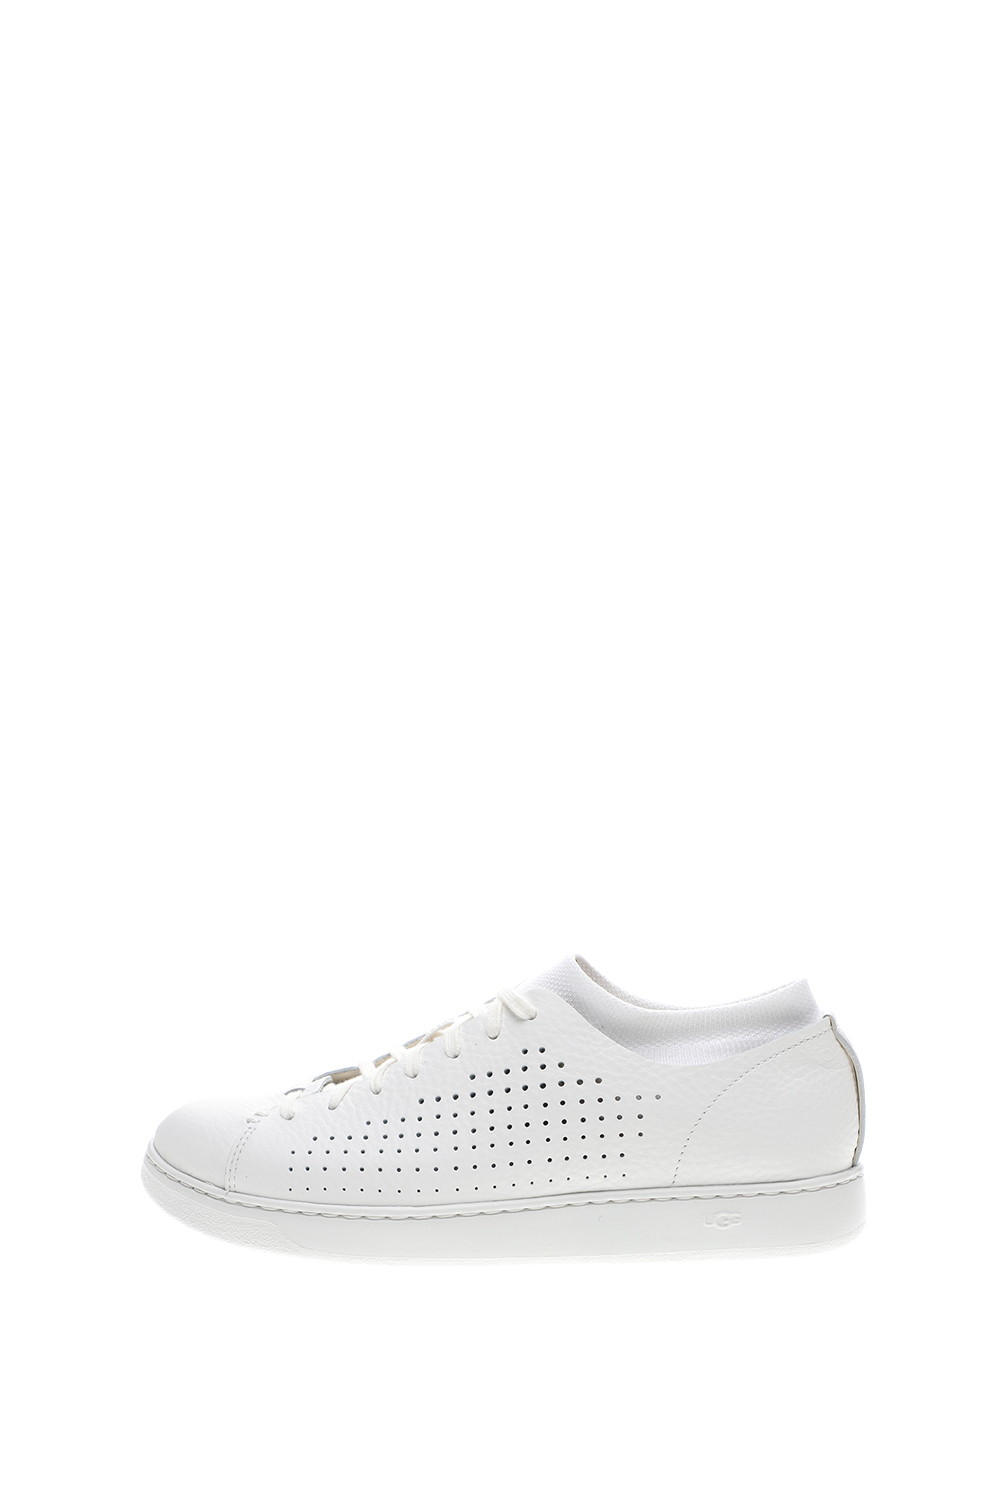 UGG – Ανδρικά sneakers UGG Pismo Low Perf λευκά